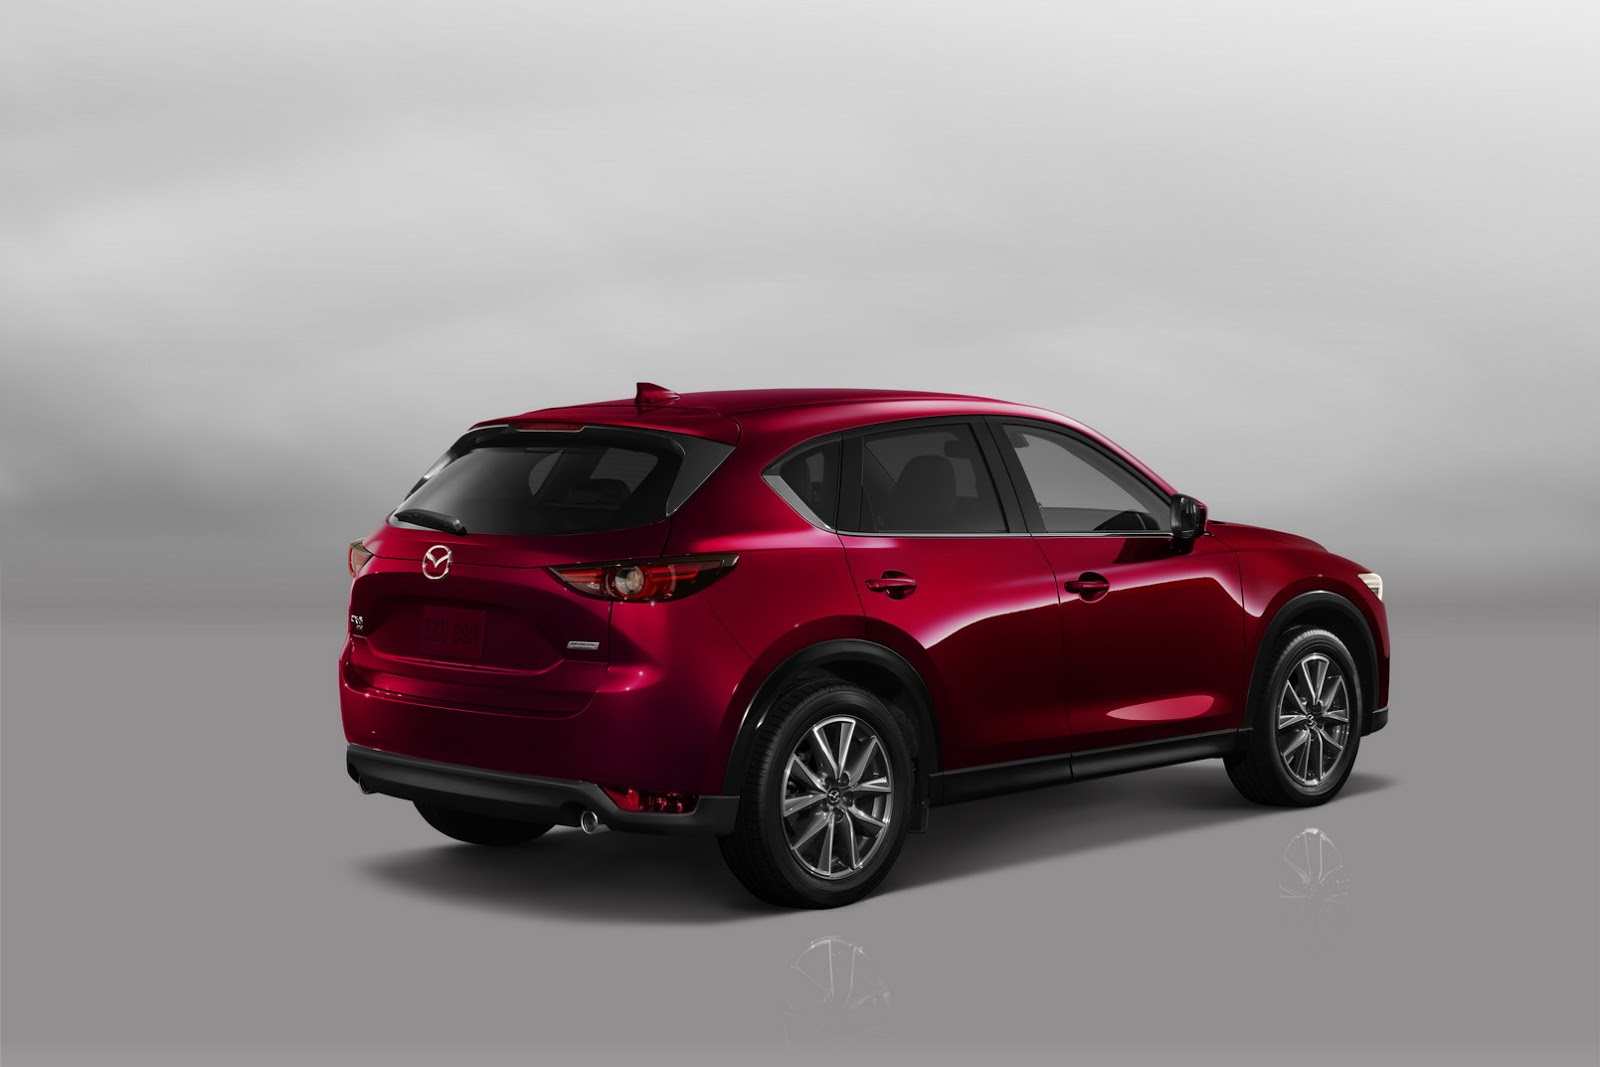 2017 Mazda CX-5 Specifications and Prices Revealed for Japan - autoevolution